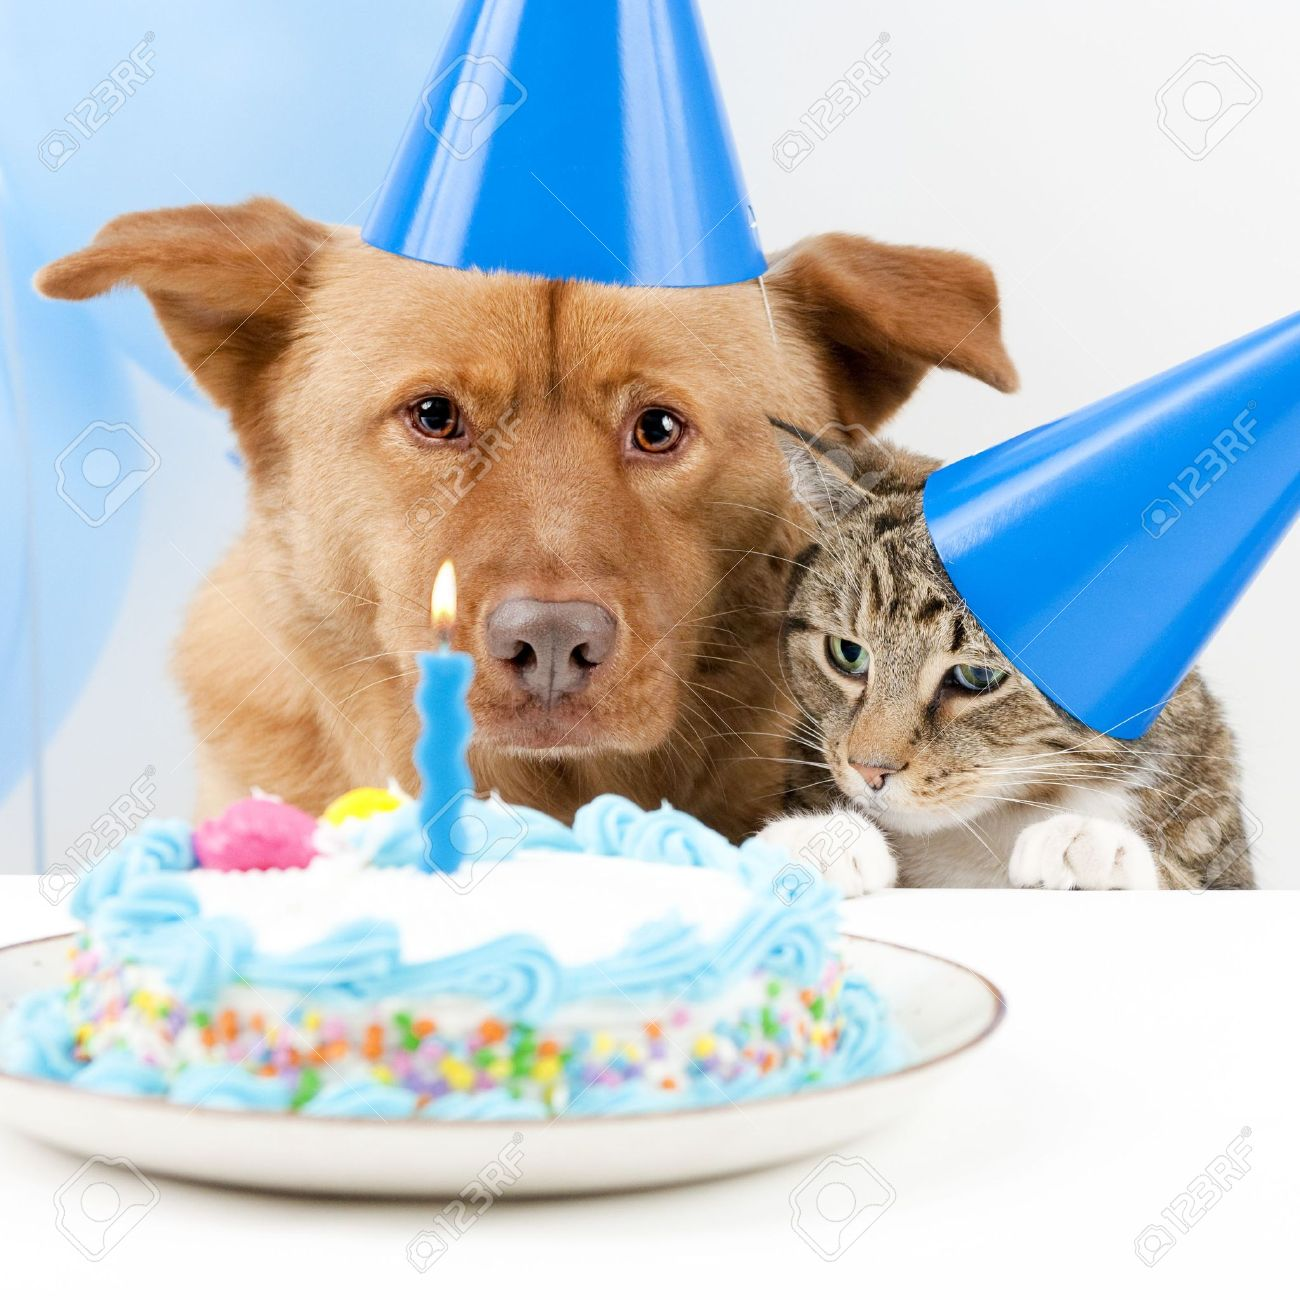 dog and cat birthday party with cake stock photo picture and